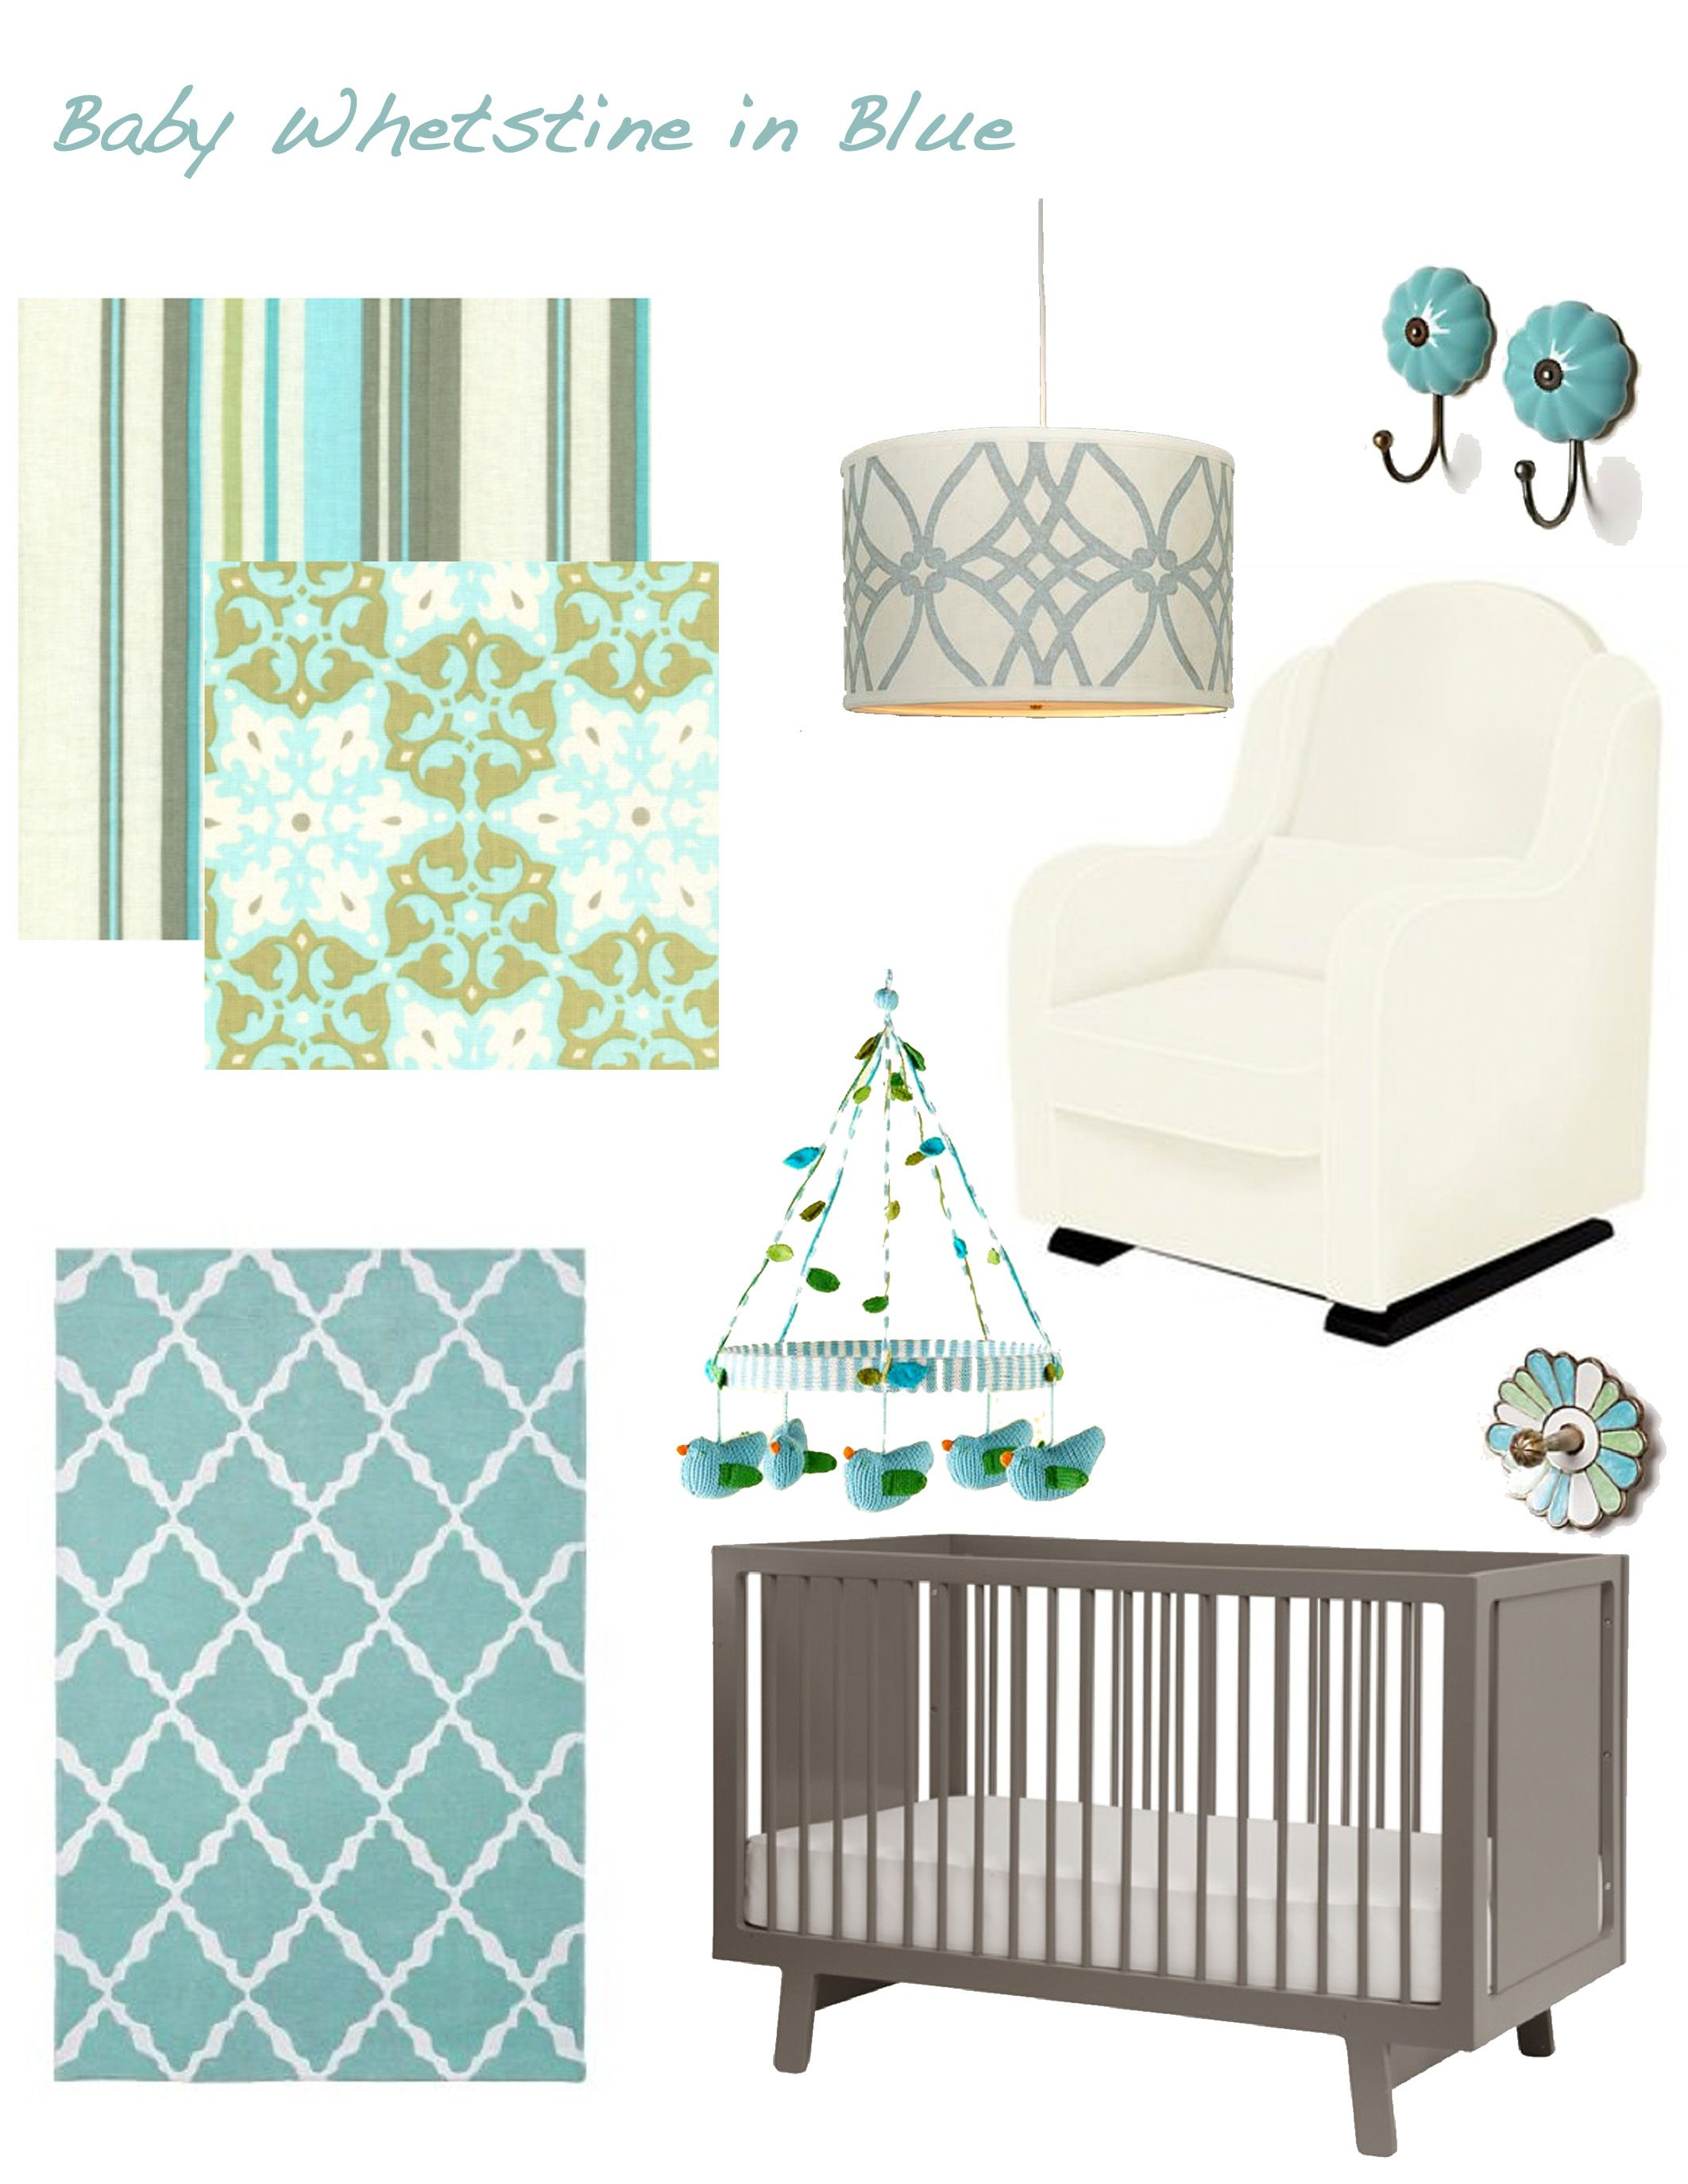 A Nursery Design for Baby W